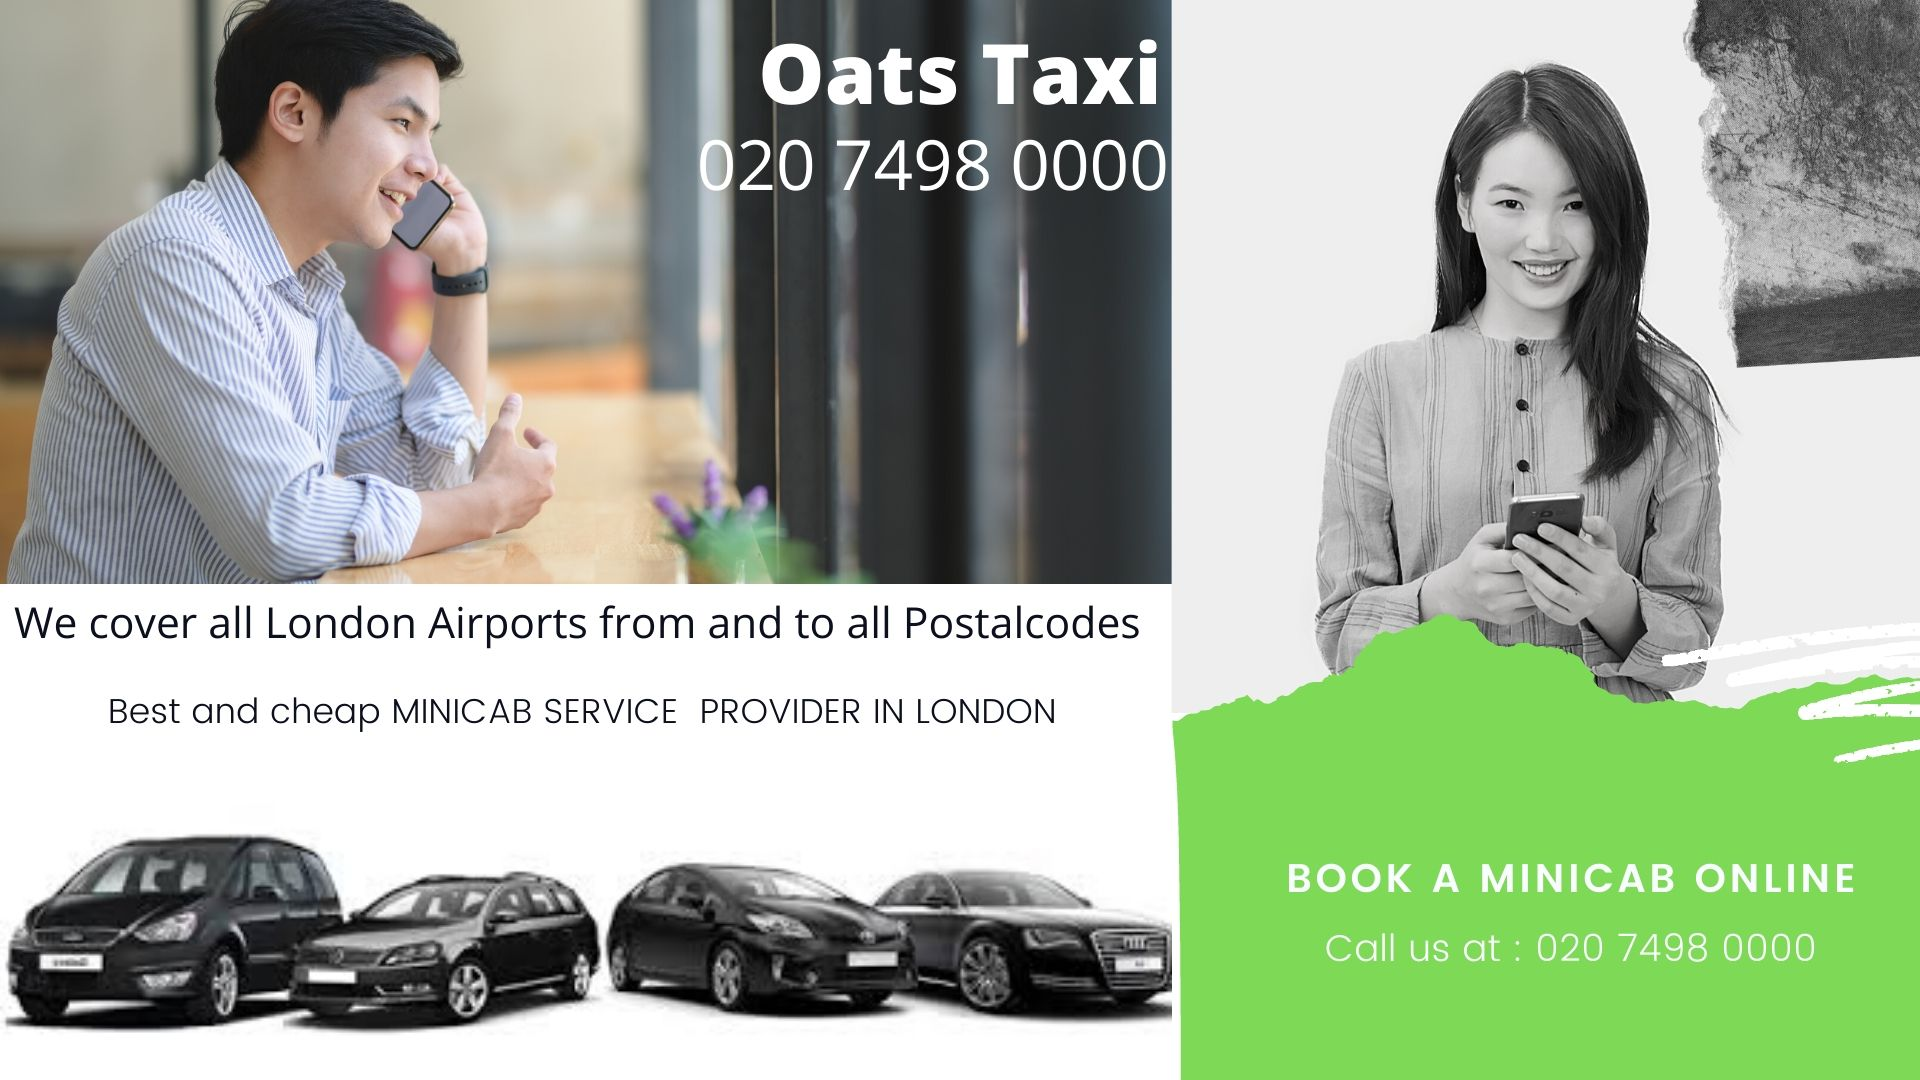 Nearest Taxi Office in Esher | Gatwick Airport | Call now : 02074980000